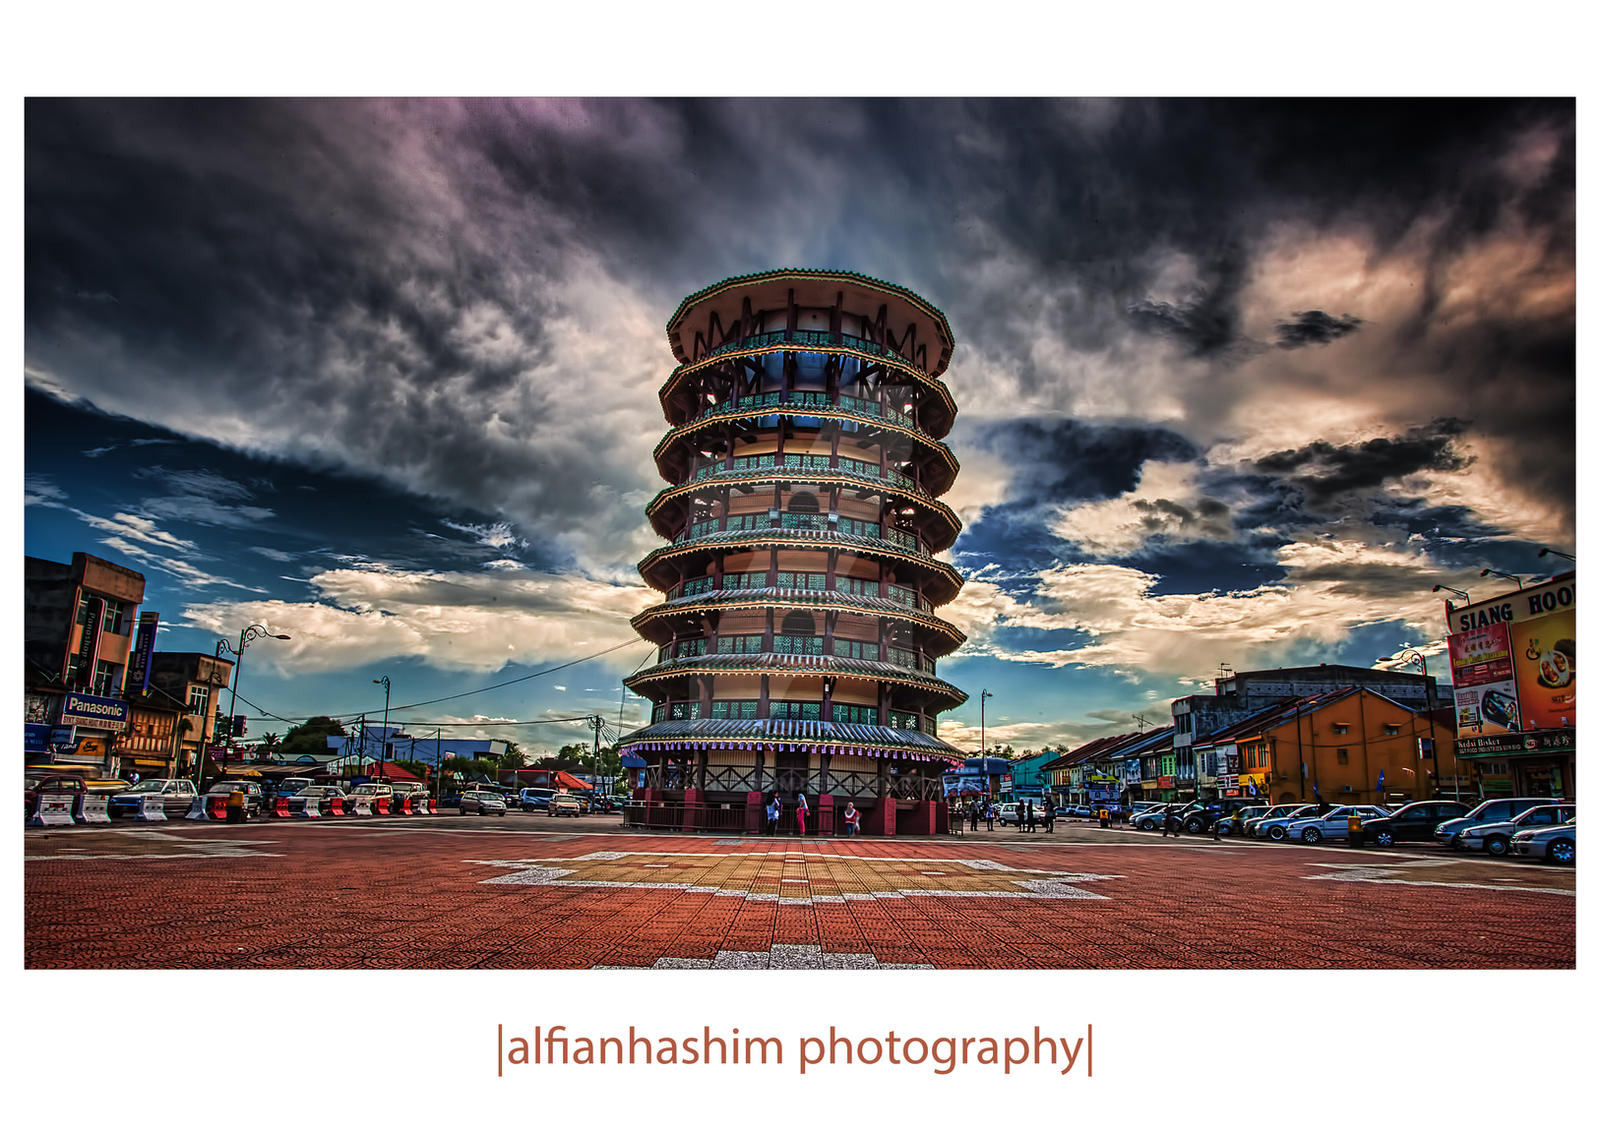 teluk intan chatrooms Download teluk intan stock photos affordable and search from millions of royalty free images, photos and vectors thousands of images added daily.